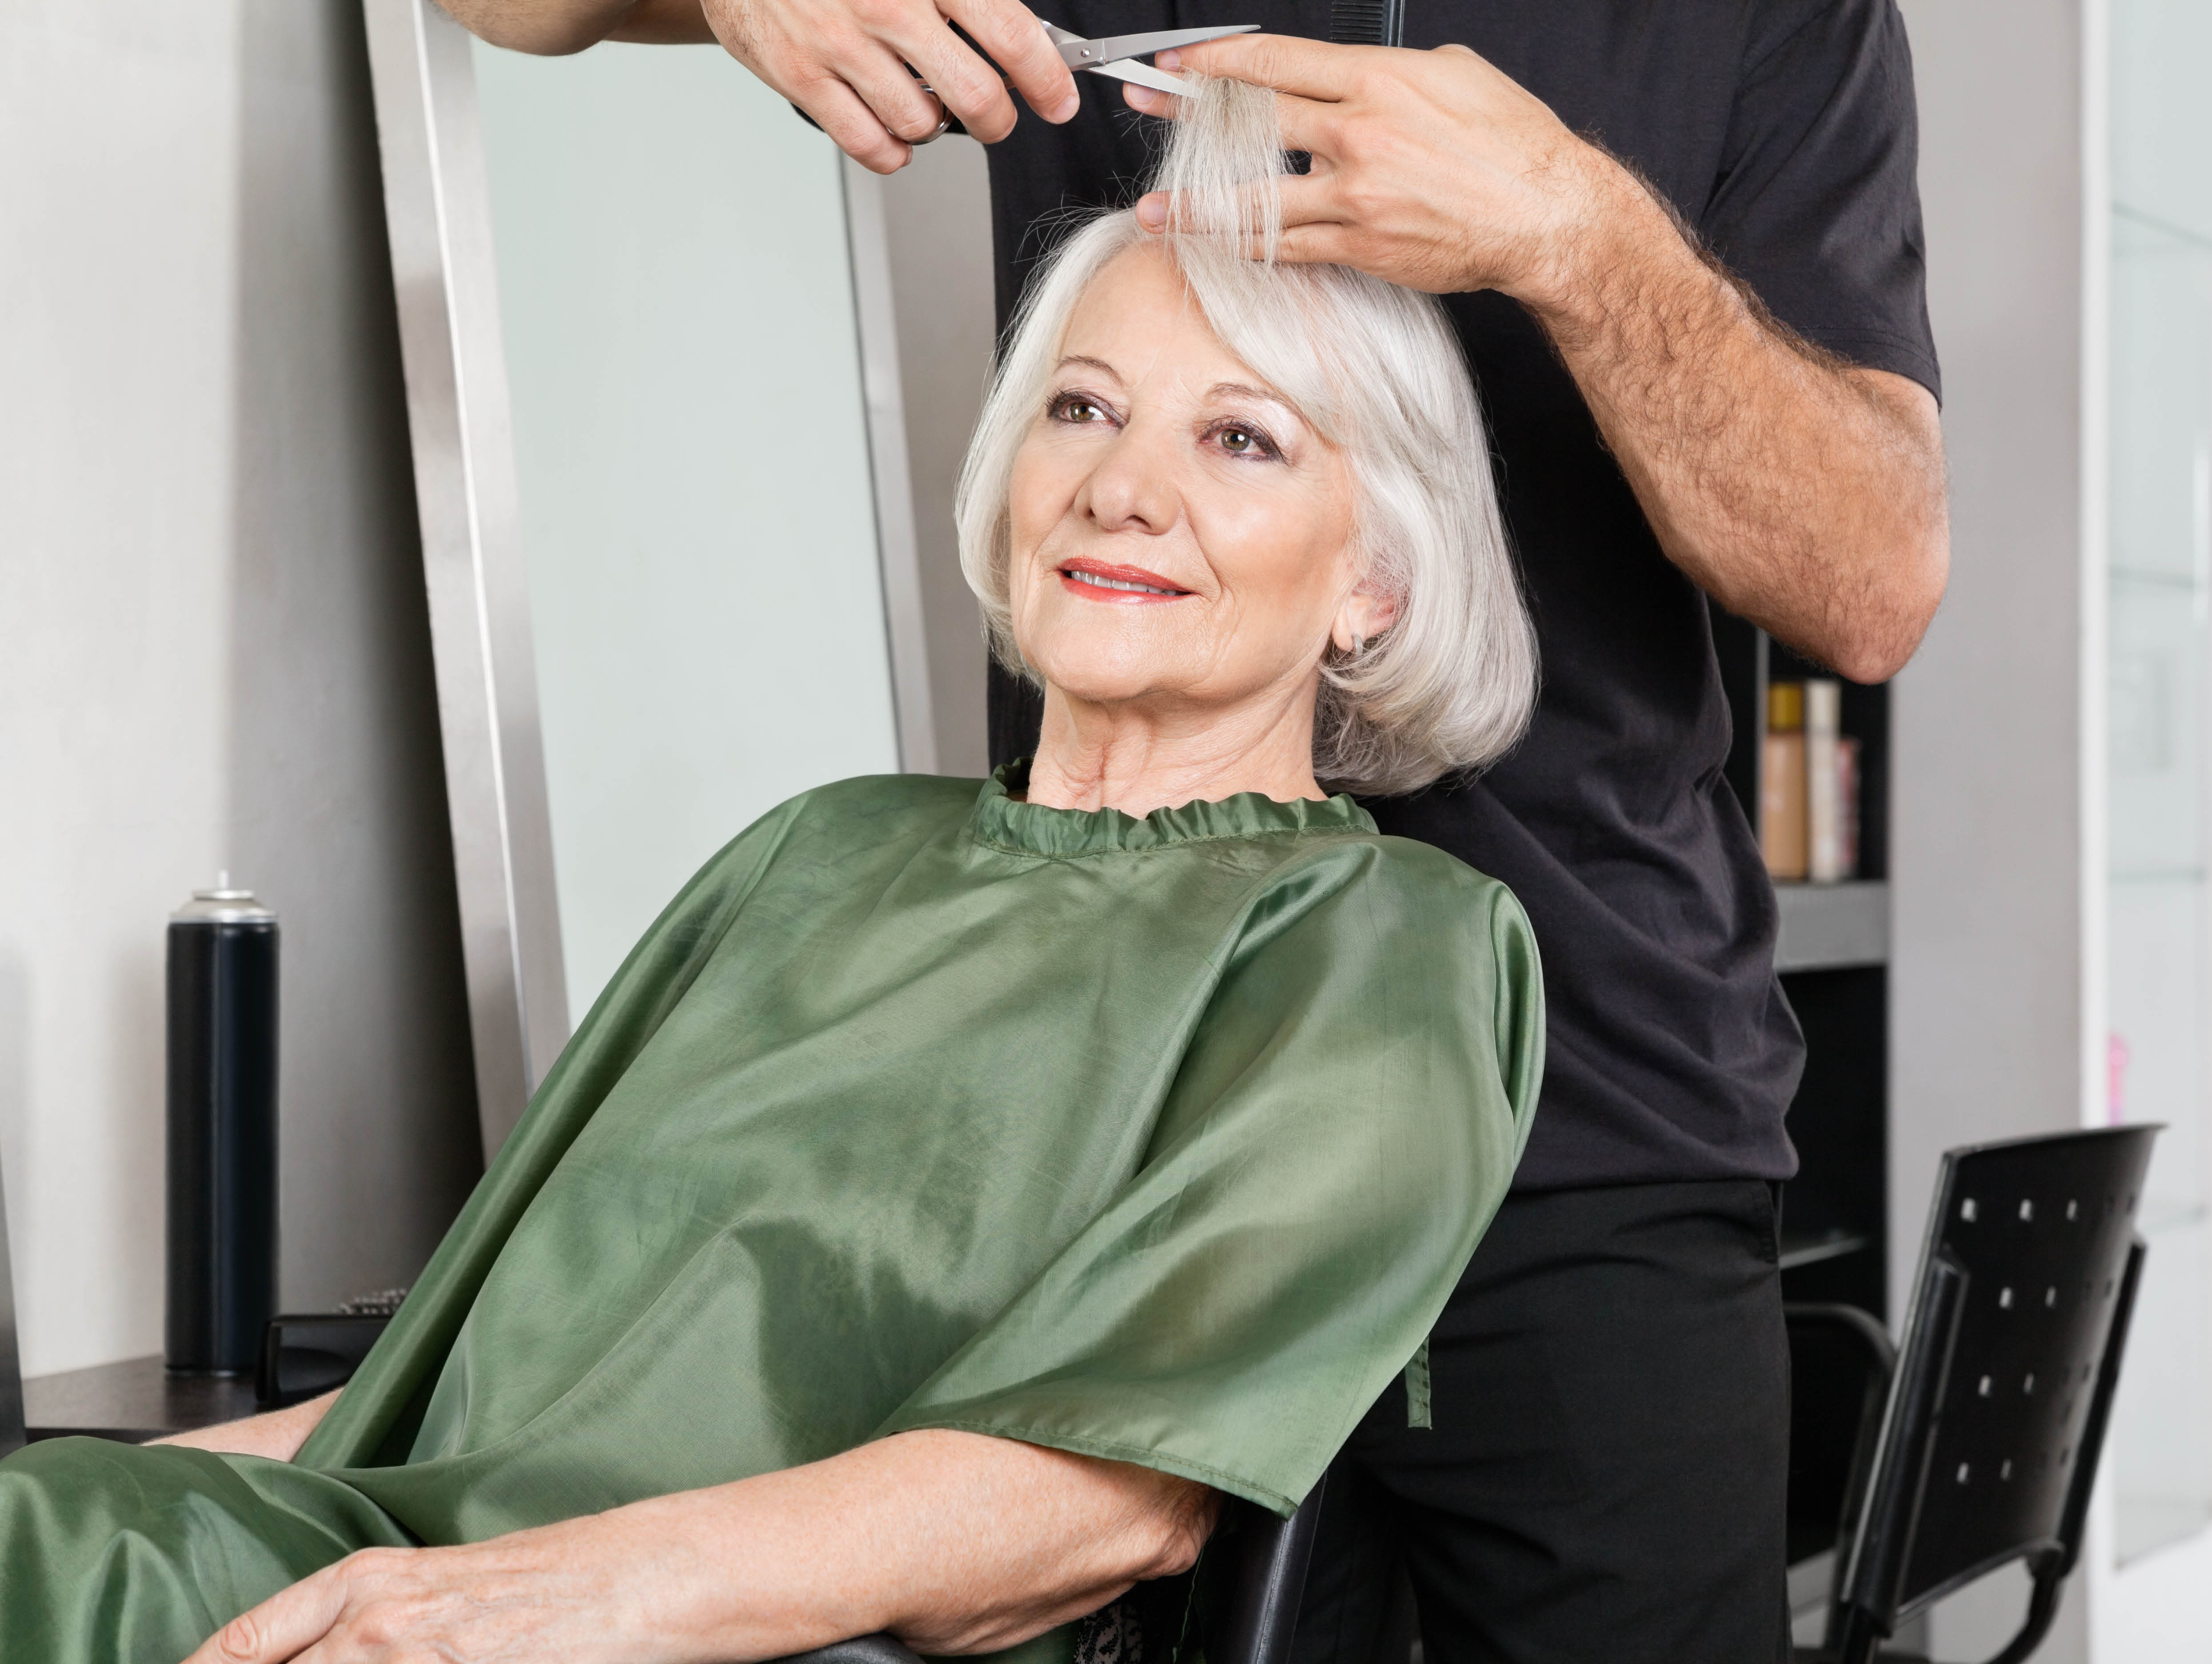 Haircuts for women near Newnan